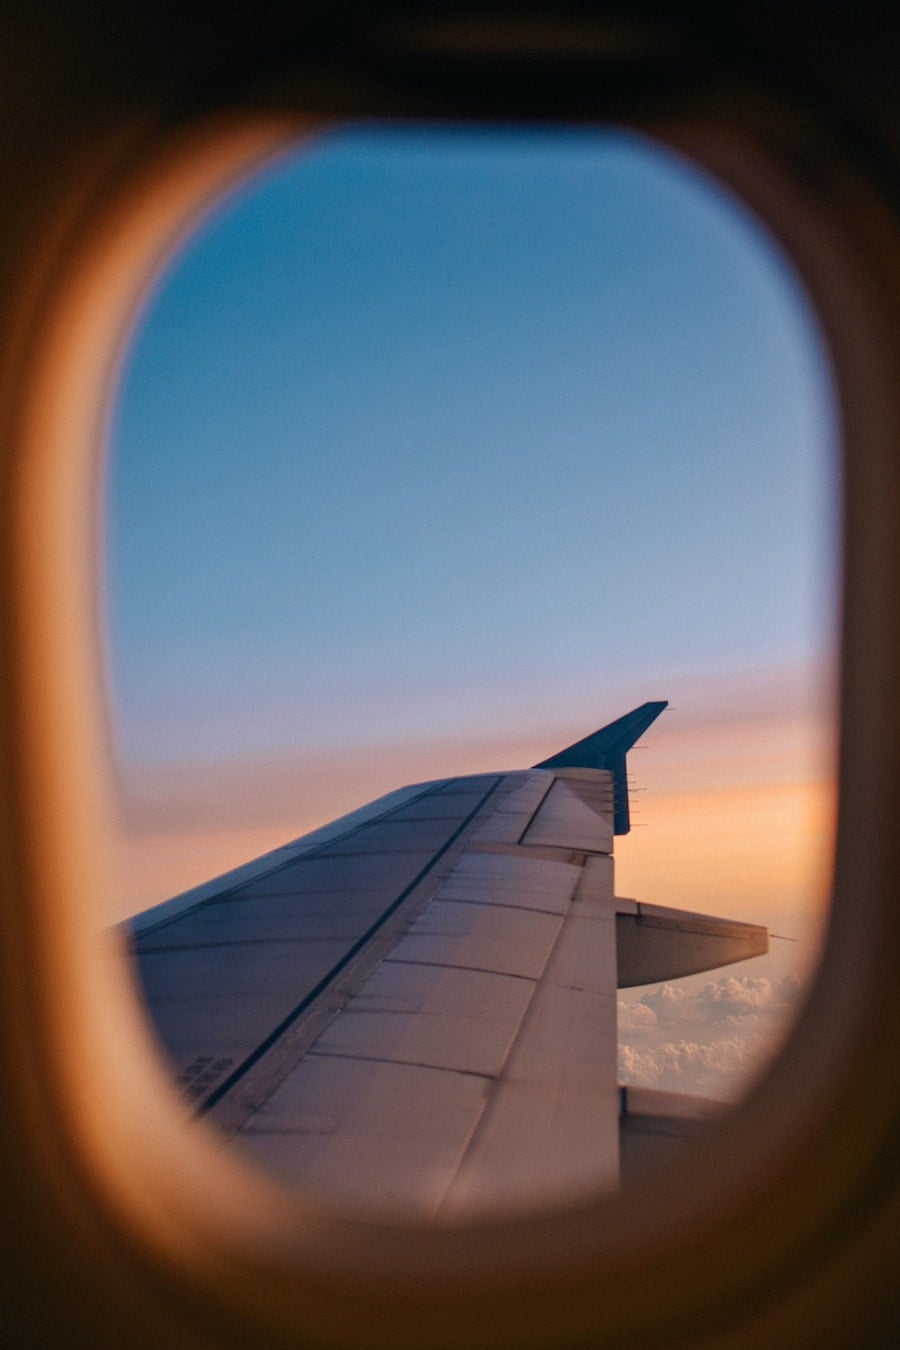 sunset out airplane window - tips for overnight flights